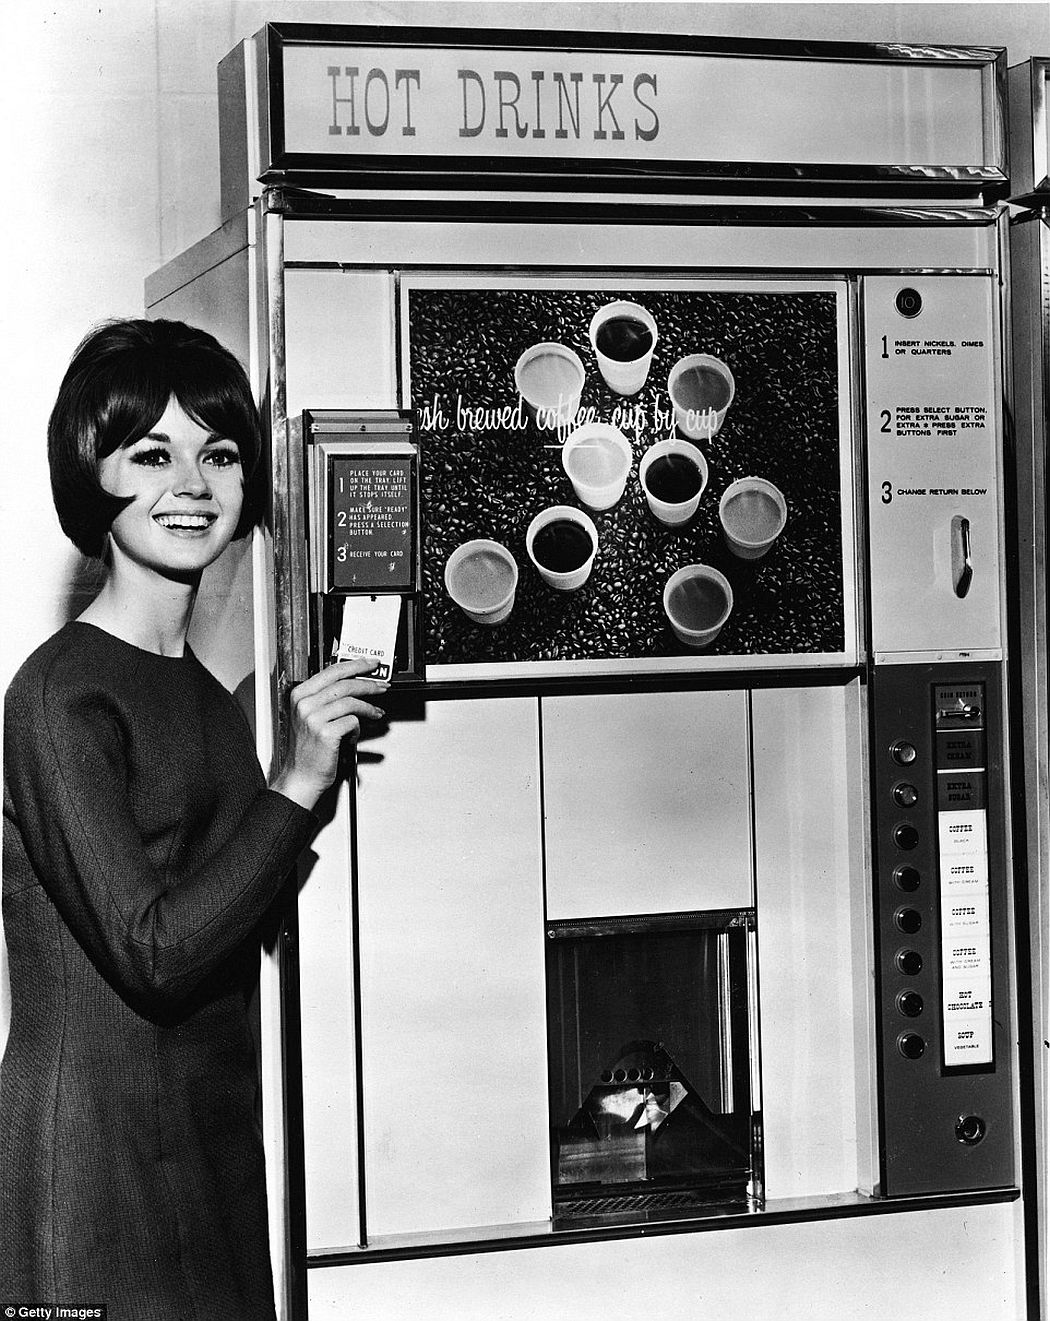 This woman is now able to use a credit card to pay for one of a selection of coffees from this self-serve machine, ca. 1960s.